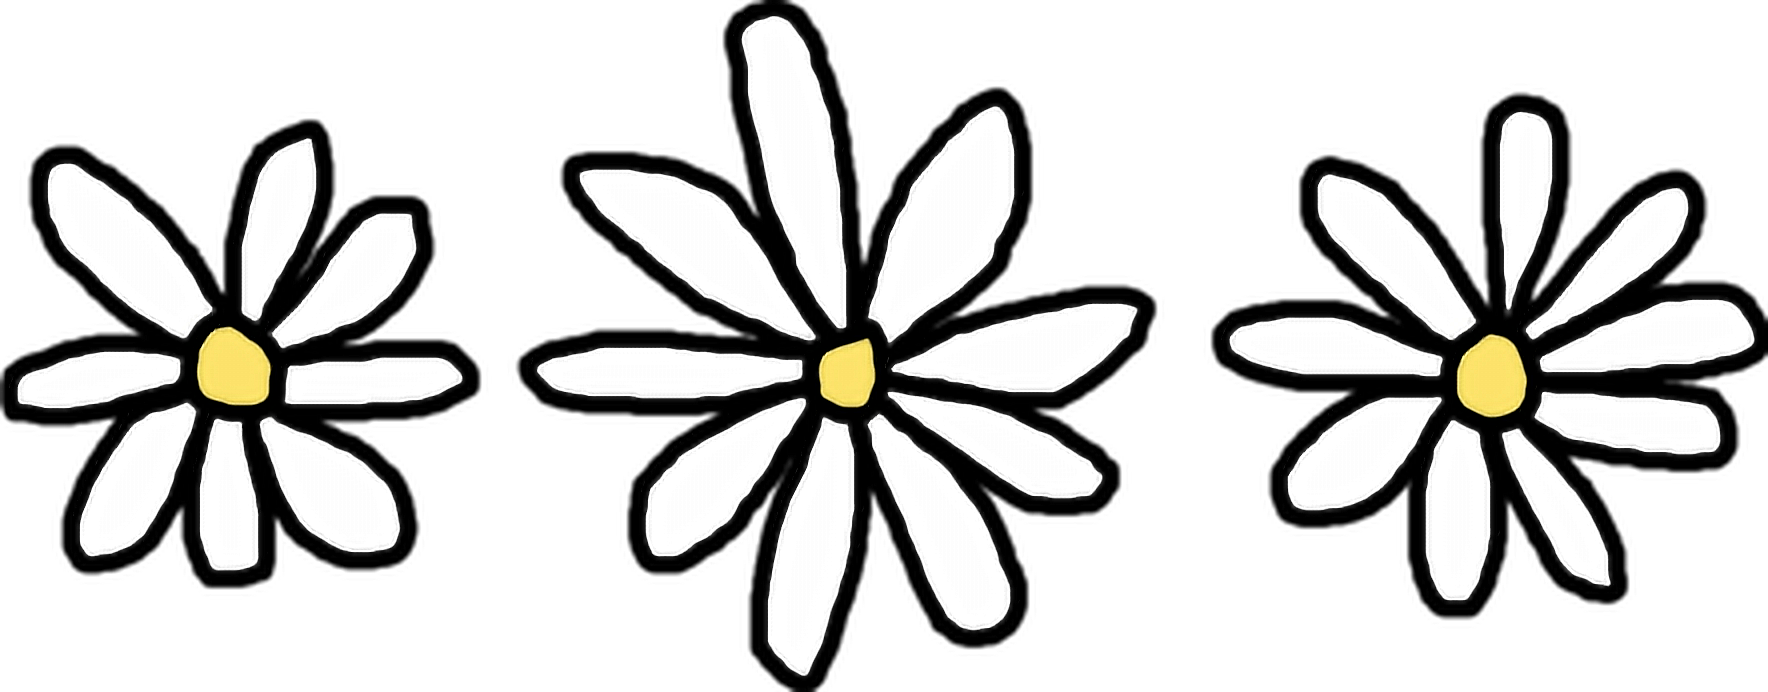 1768x692 Collection Of Free Daisies Drawing Basic Download On Ui Ex